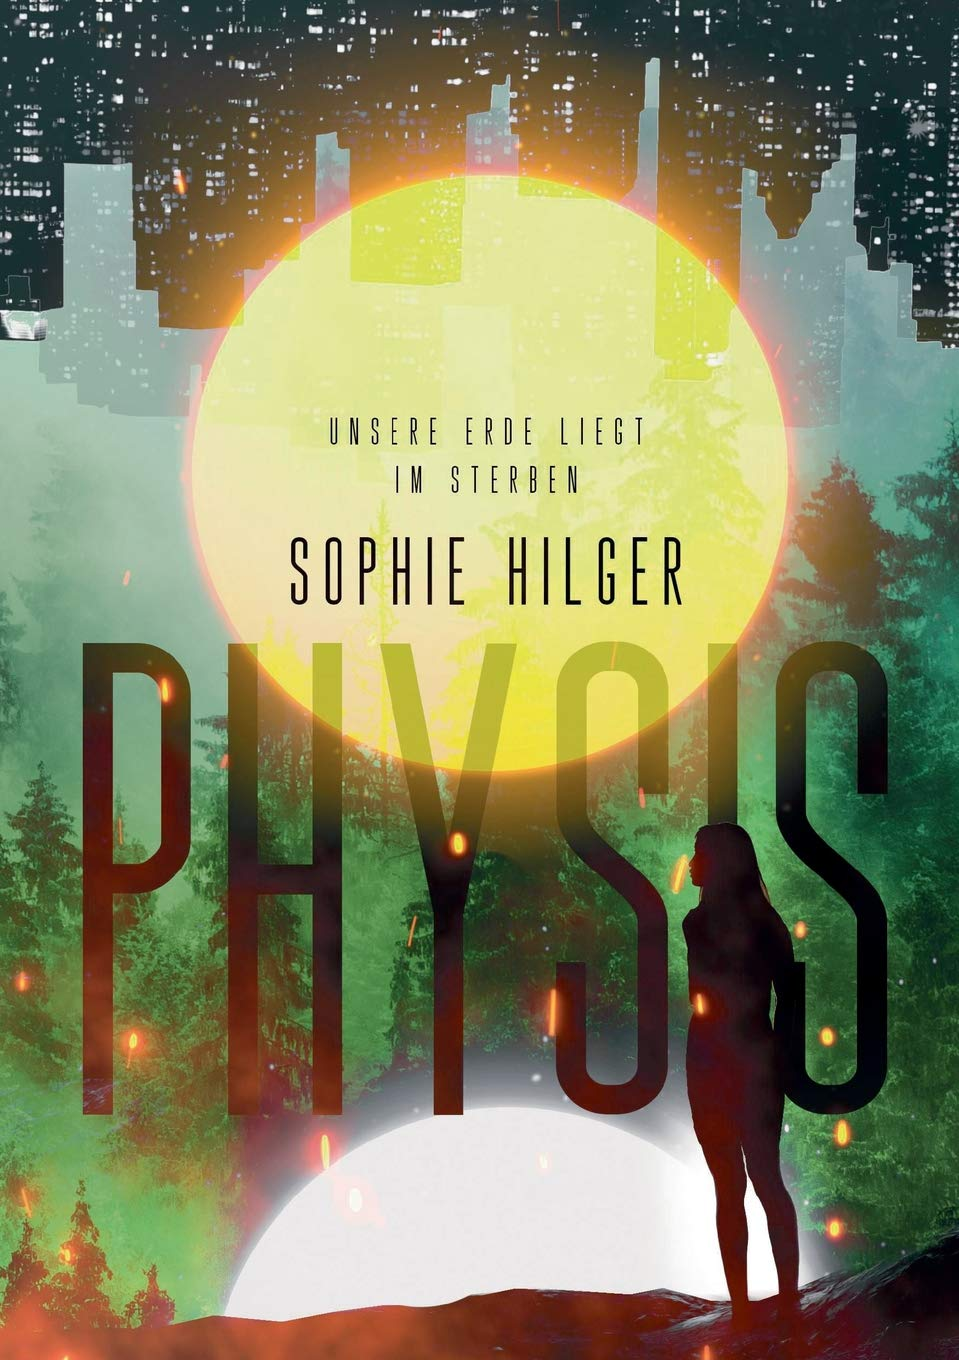 Hilger, Sophie: Physis